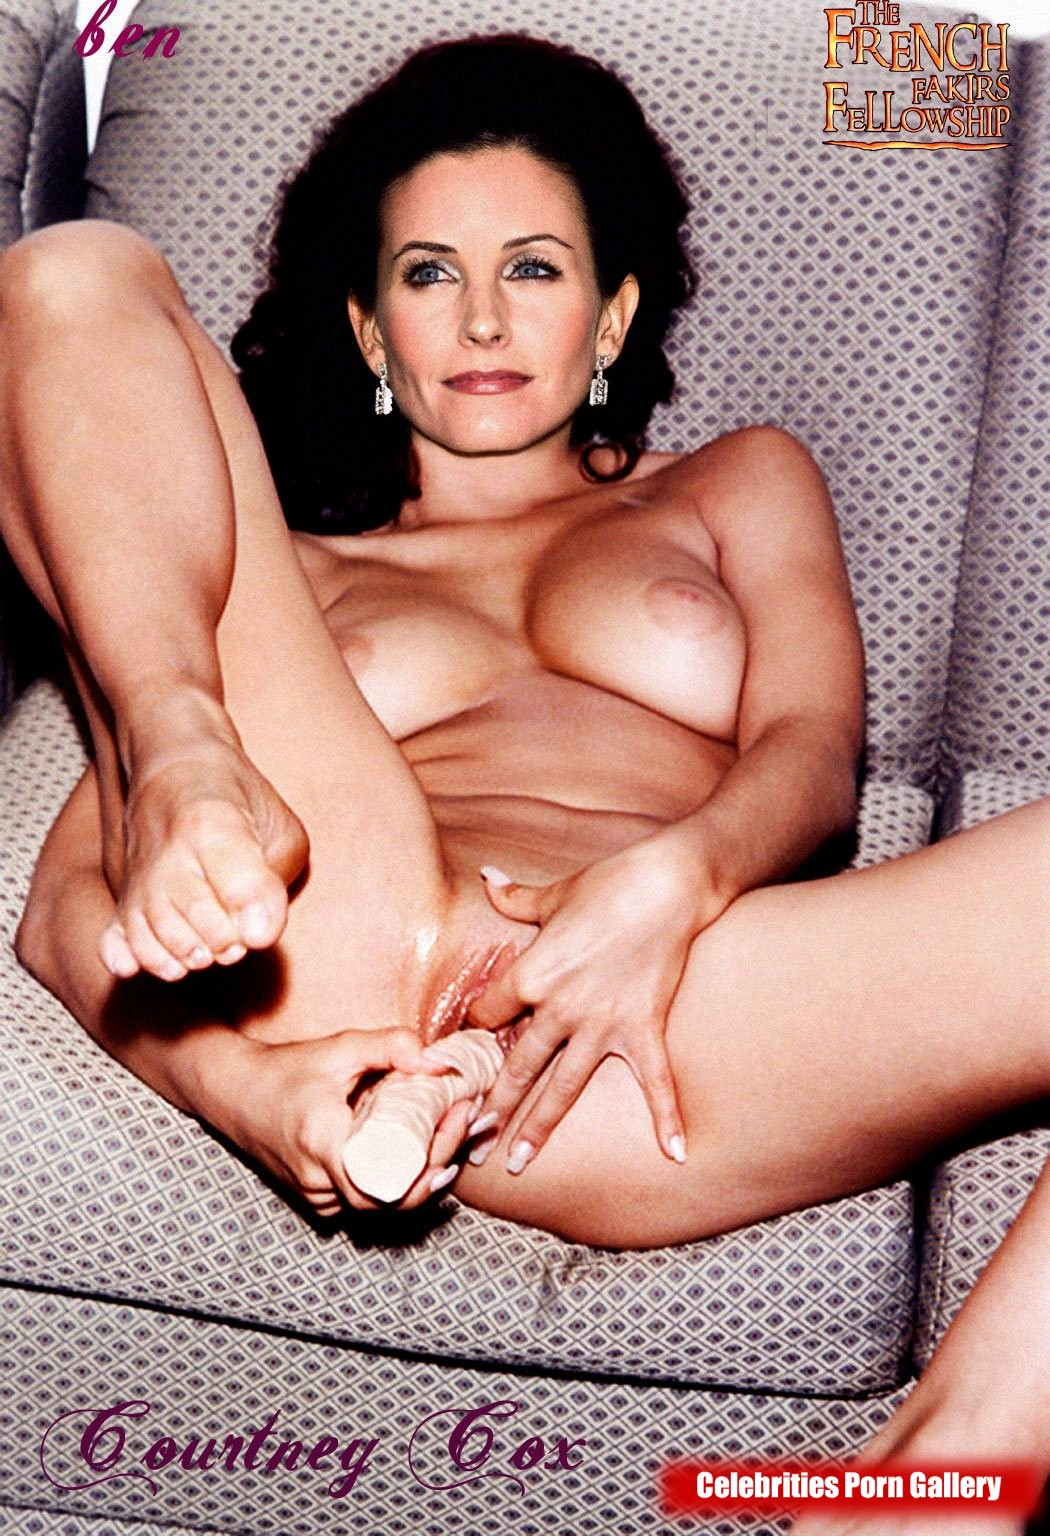 Courteney cox nude, topless pictures, playboy photos, sex scene uncensored